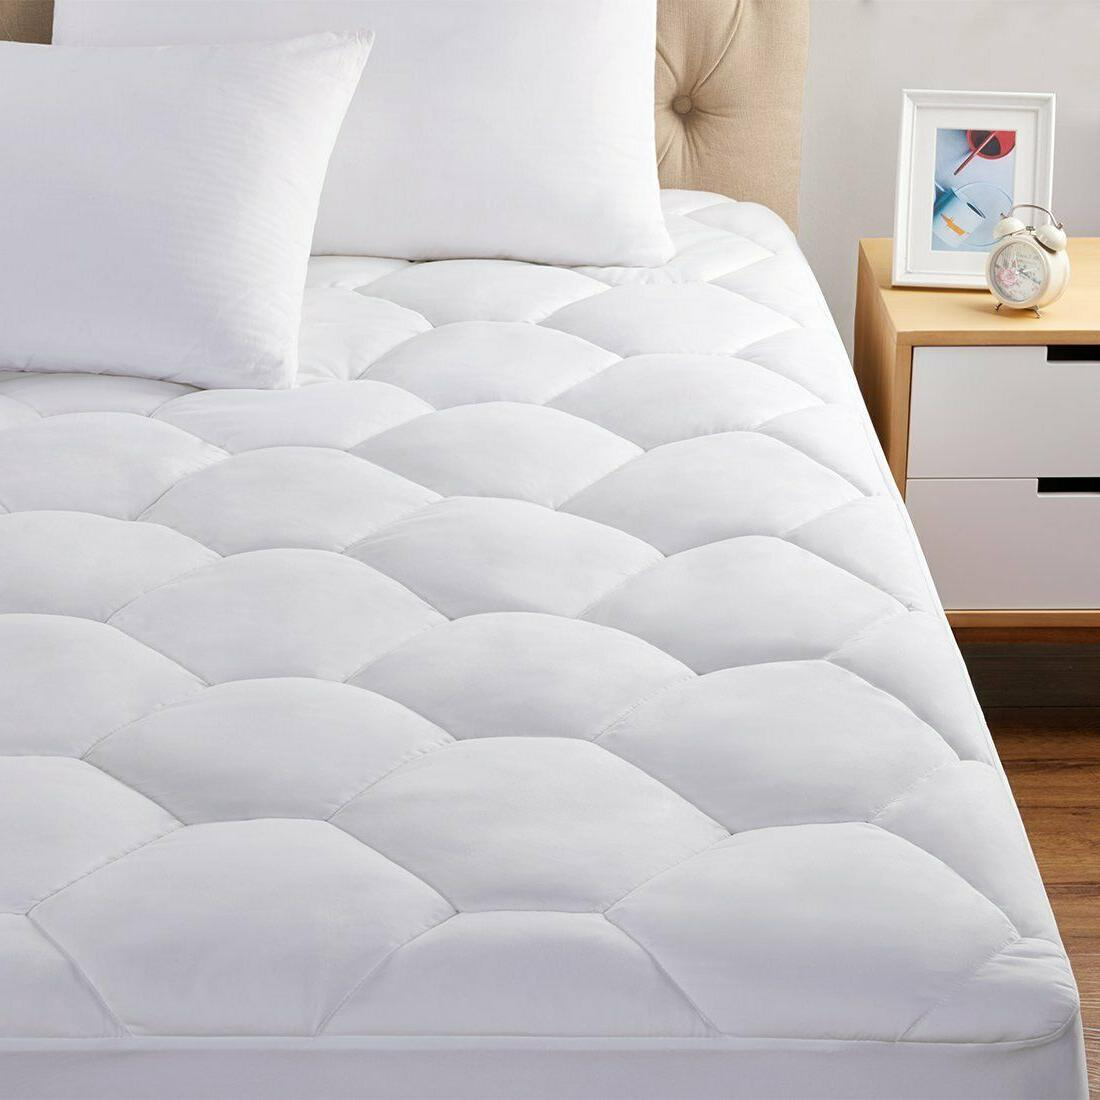 Quilted Fitted Queen Mattress Cover Full Twin